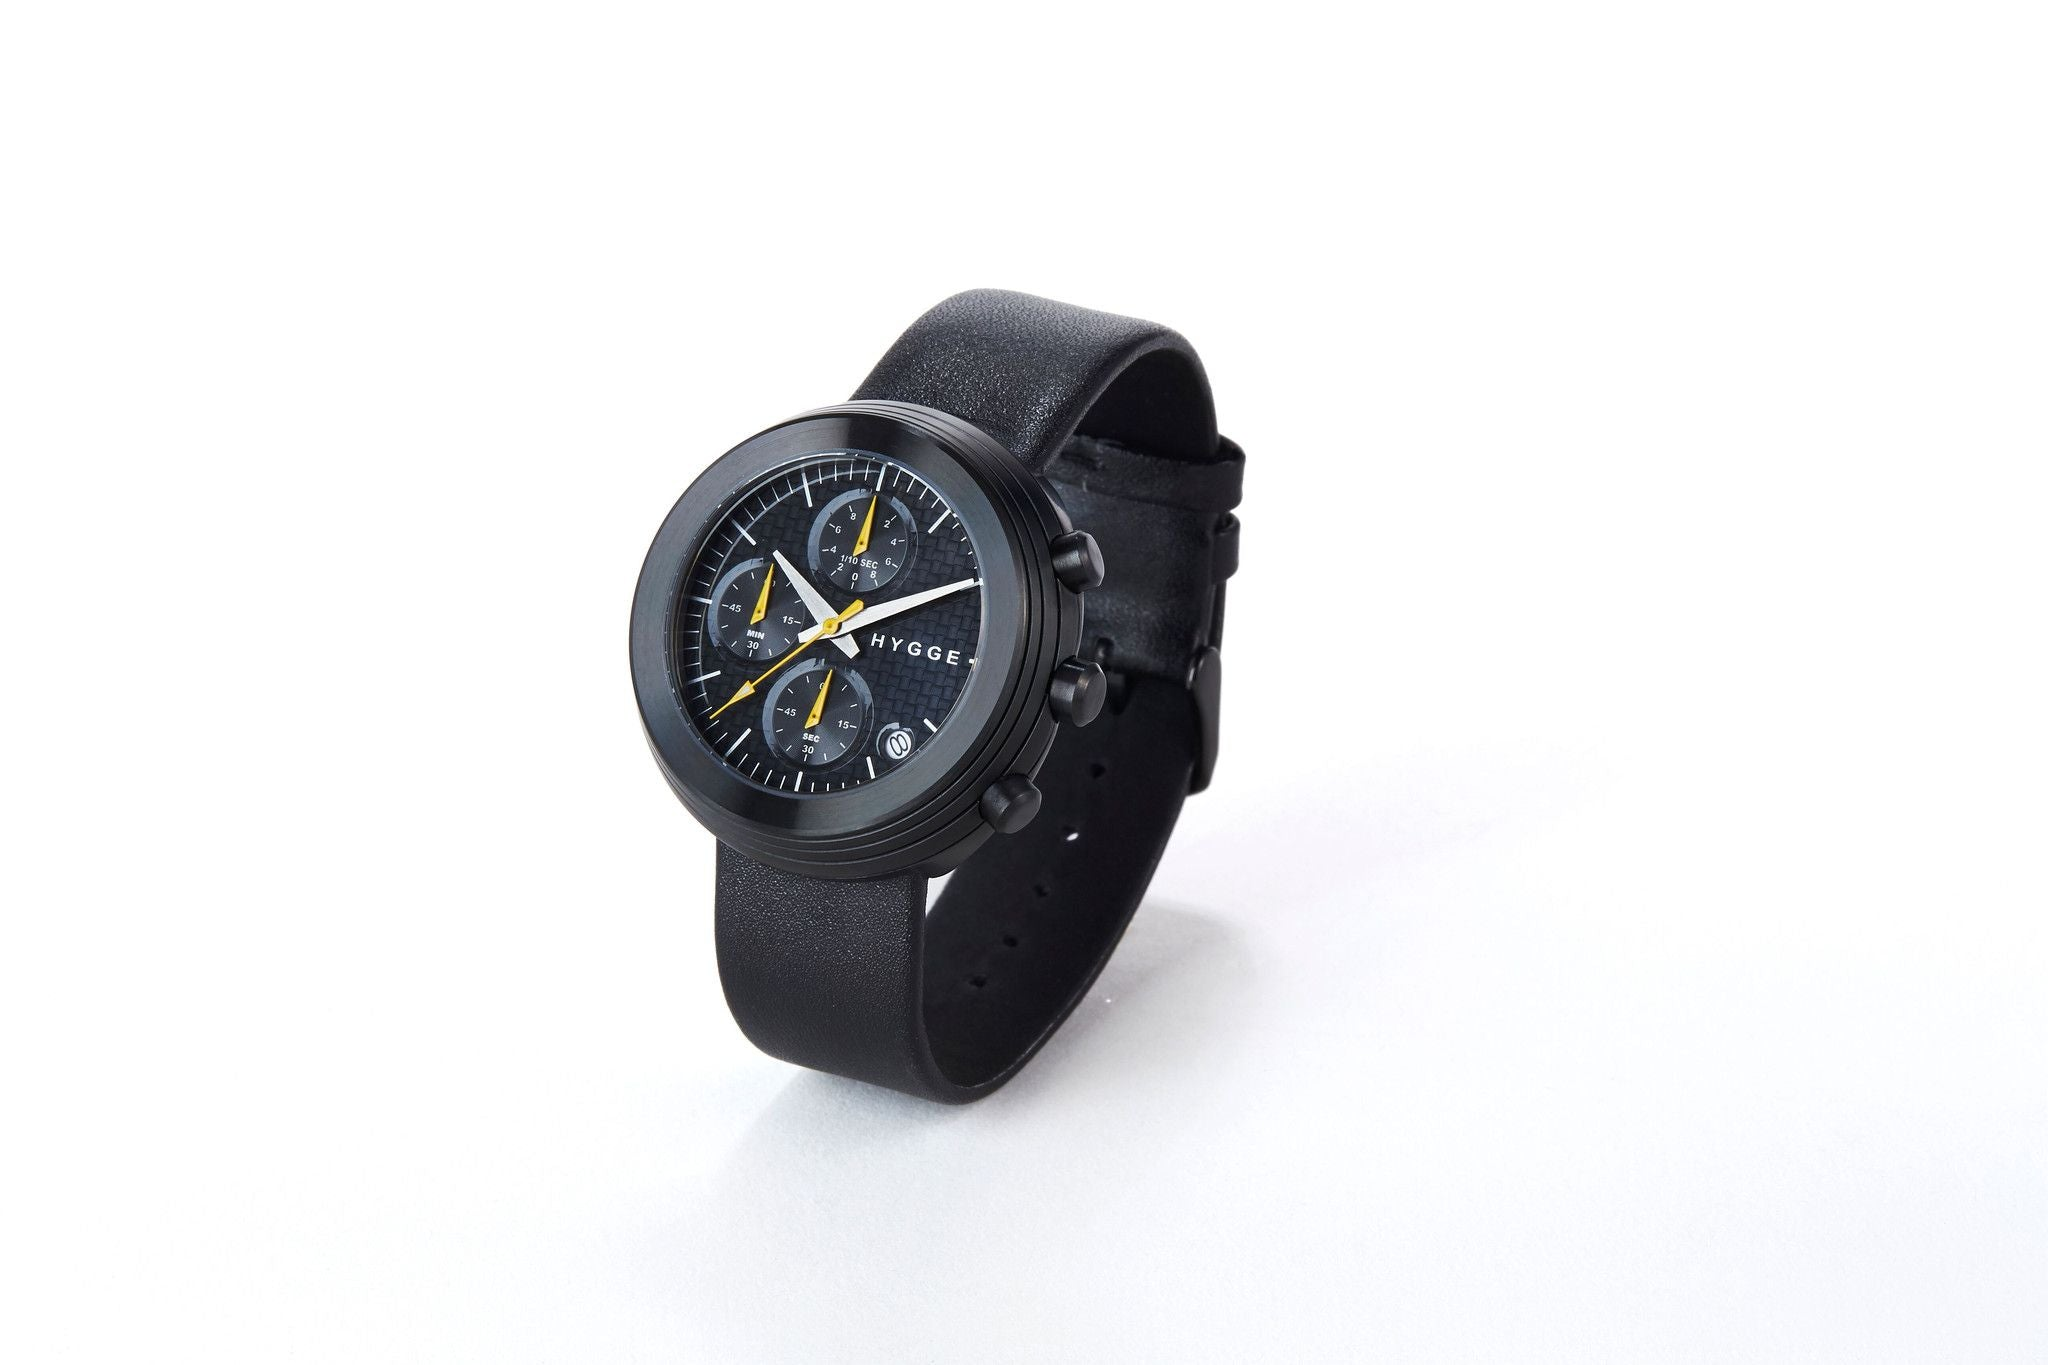 HYGGE Watch  2312 Chronograph Series Leather Strap Black/Black - Australian Gifts Online - 3